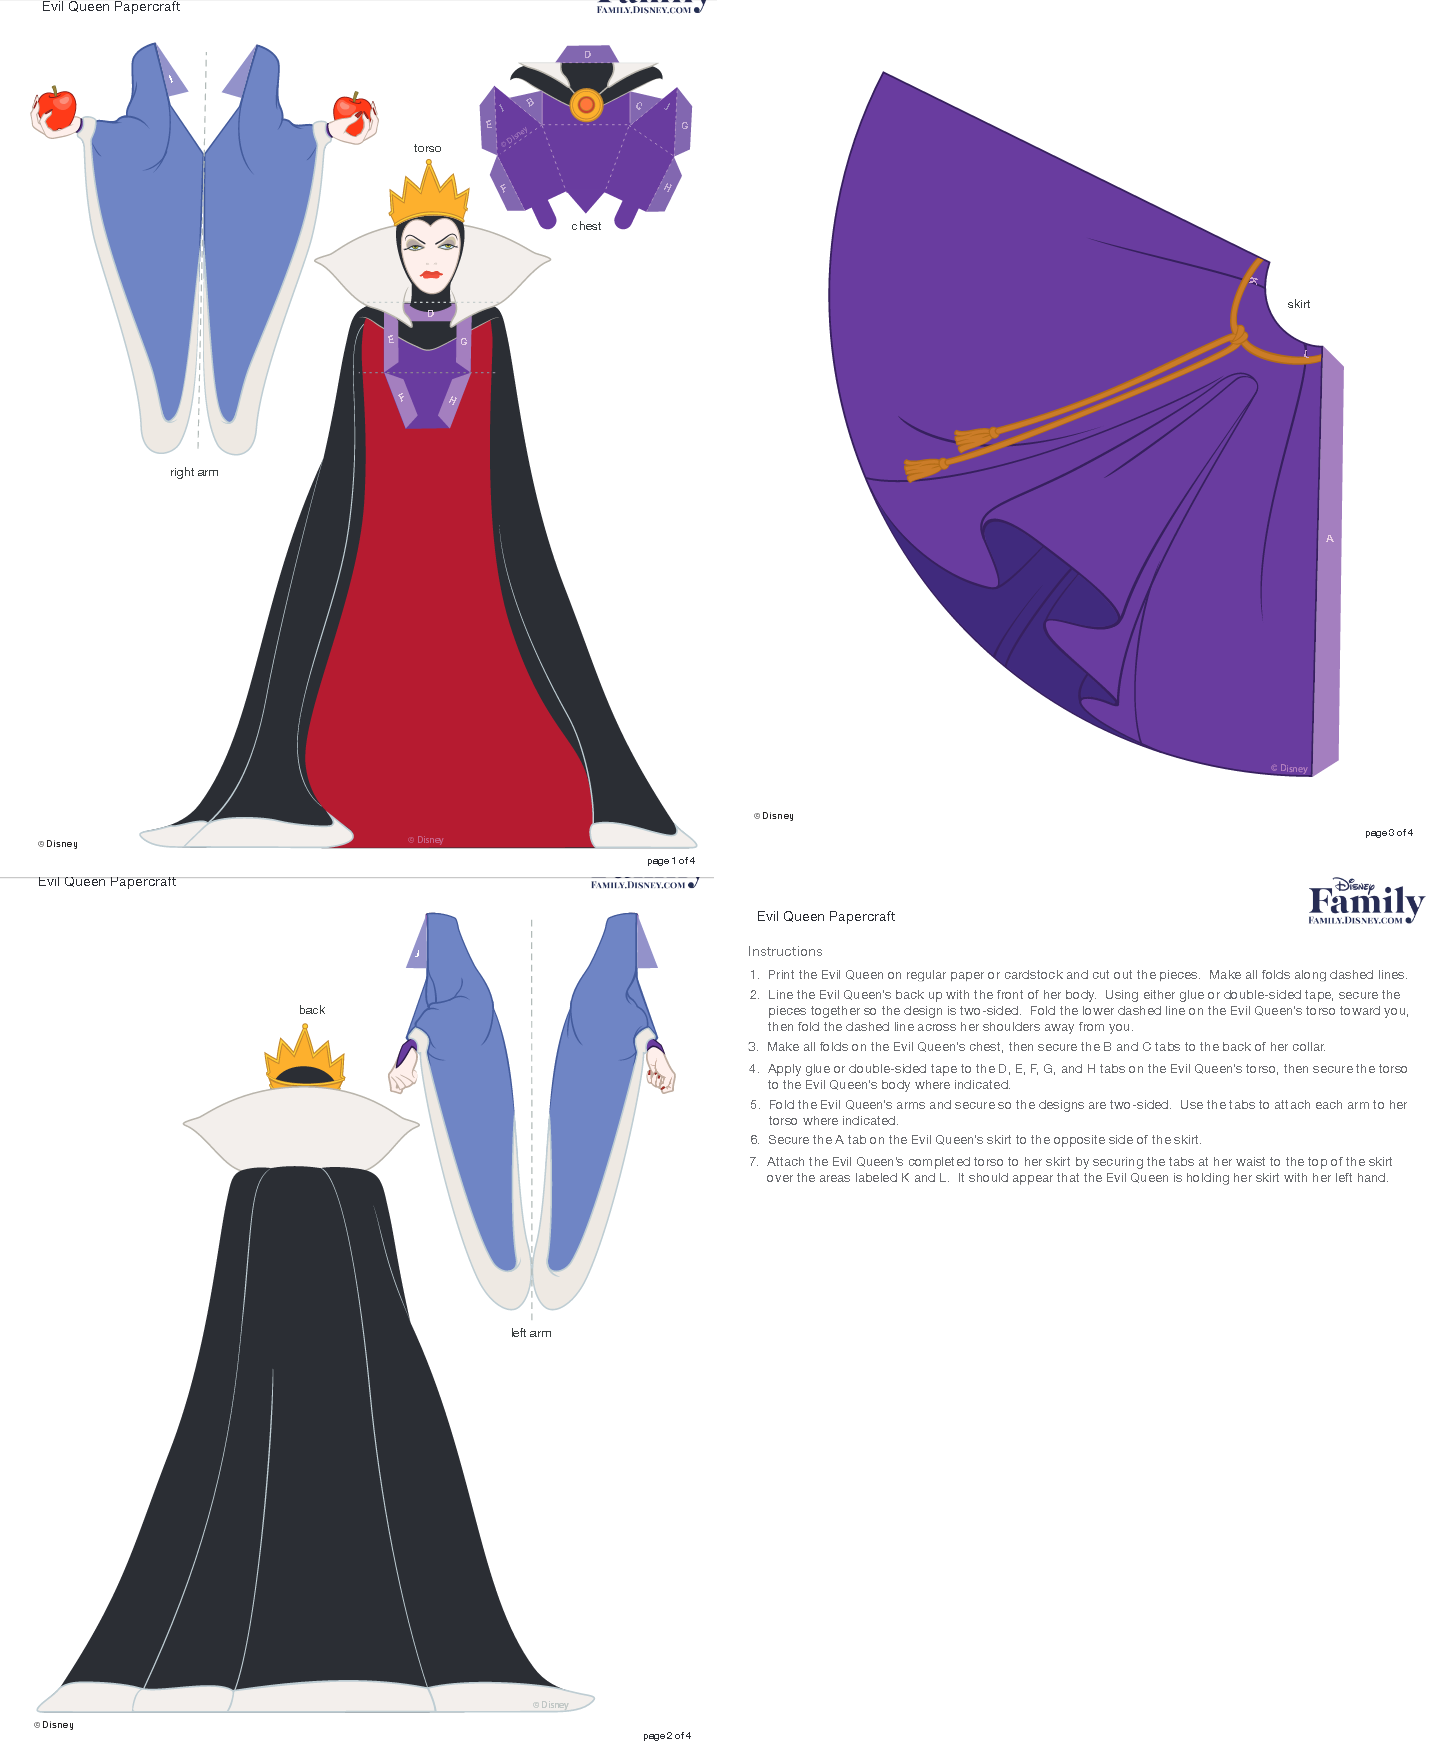 http://family.disney.com/craft/evil-queen-papercraft ... - photo#17